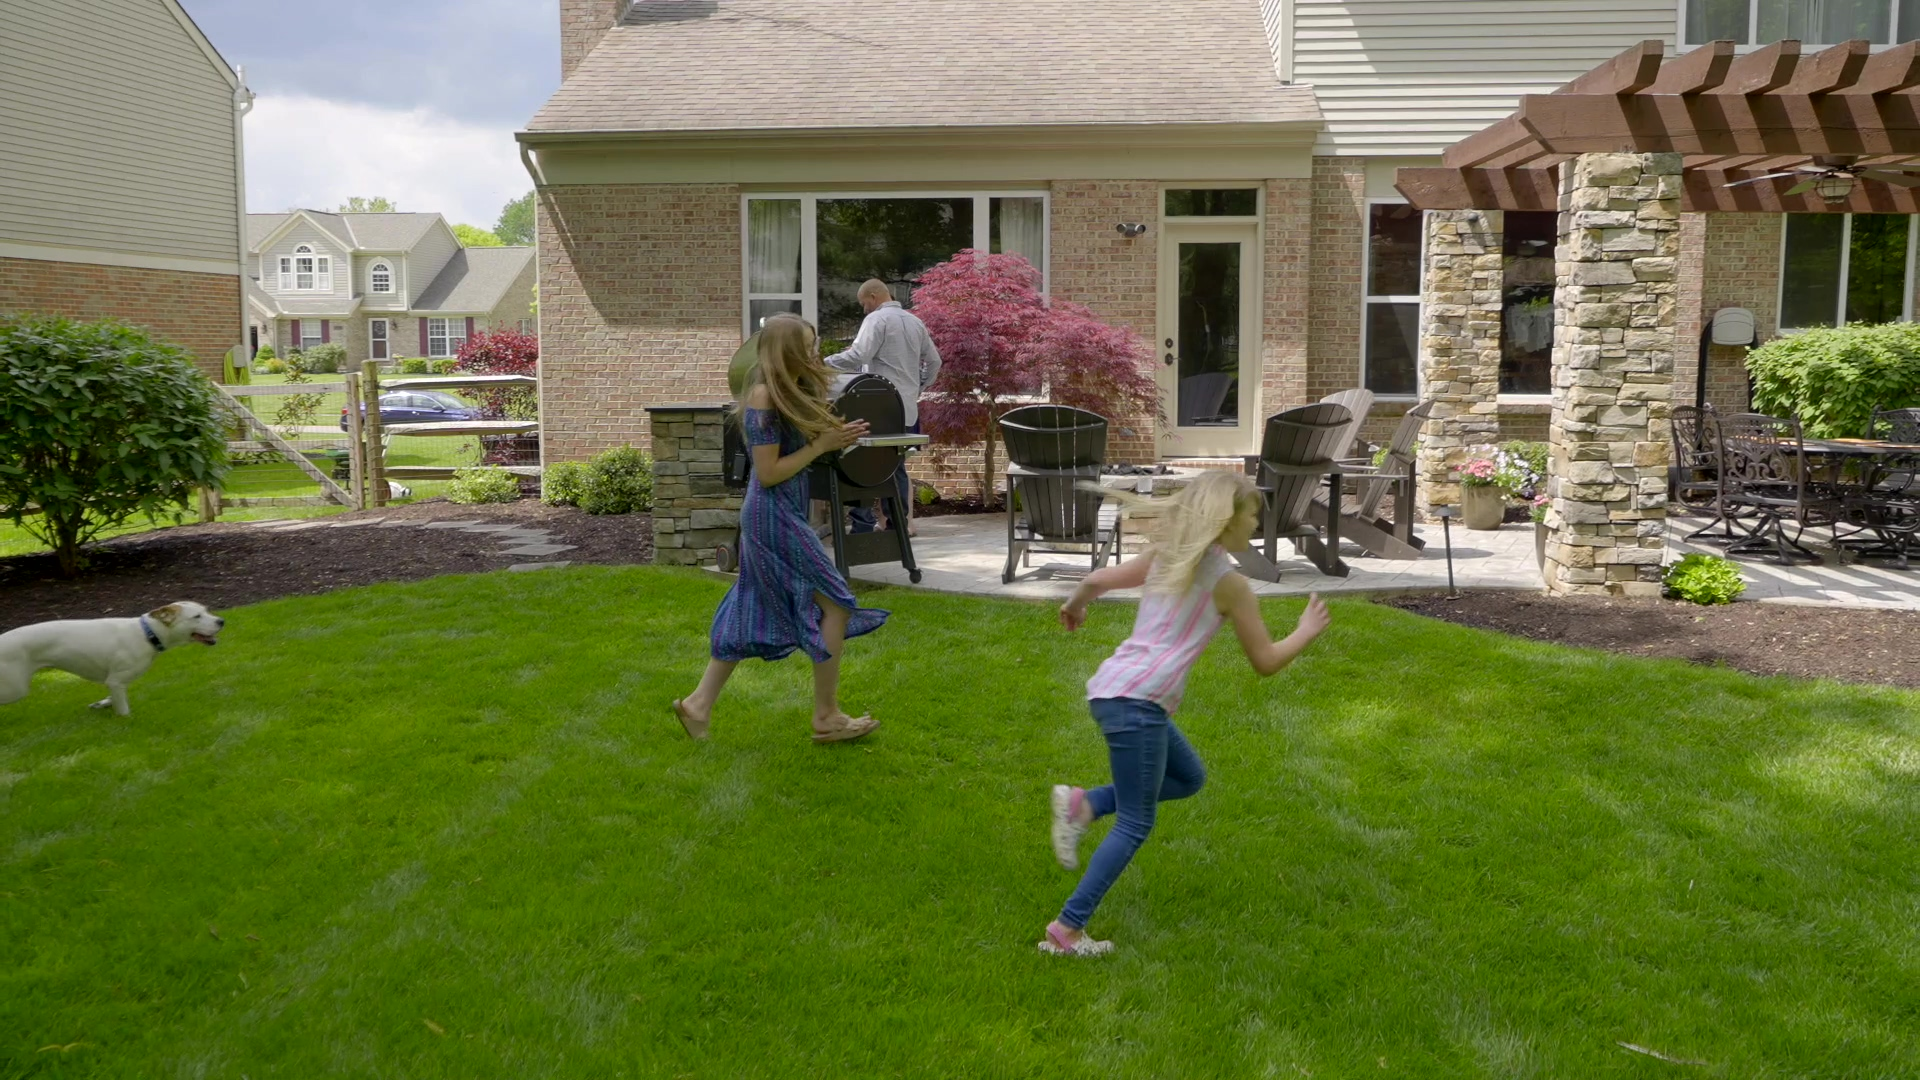 Kids playing in their yard with their dog